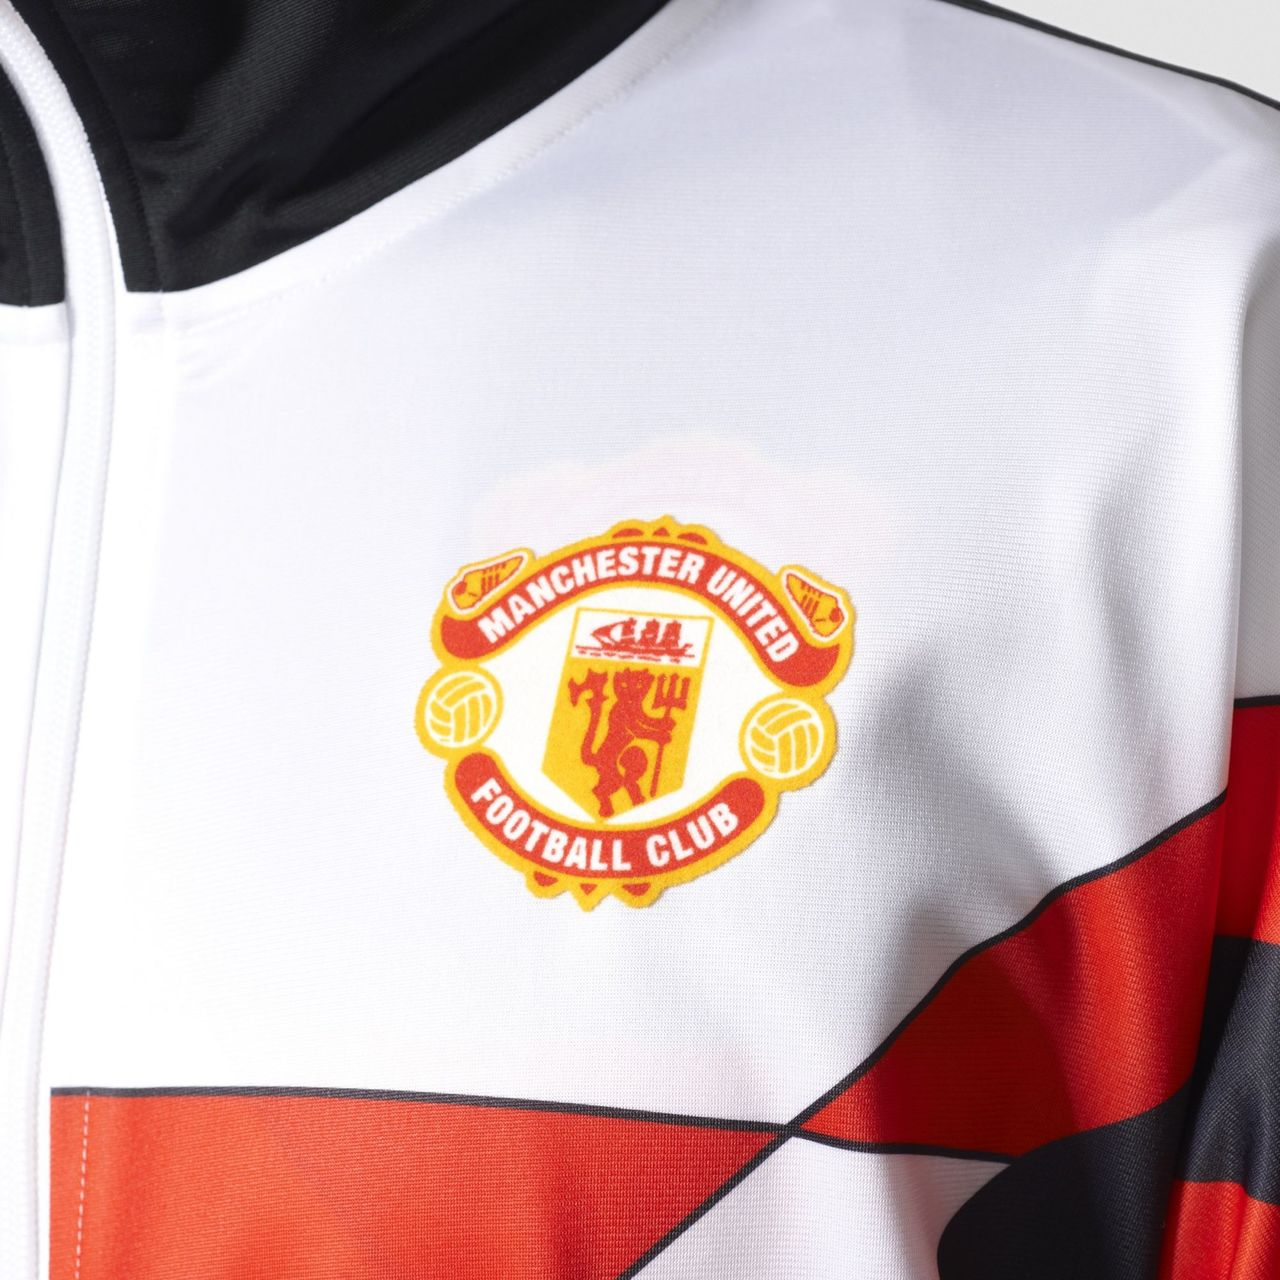 06e46271d Retro Adidas Man Utd Shirt – EDGE Engineering and Consulting Limited